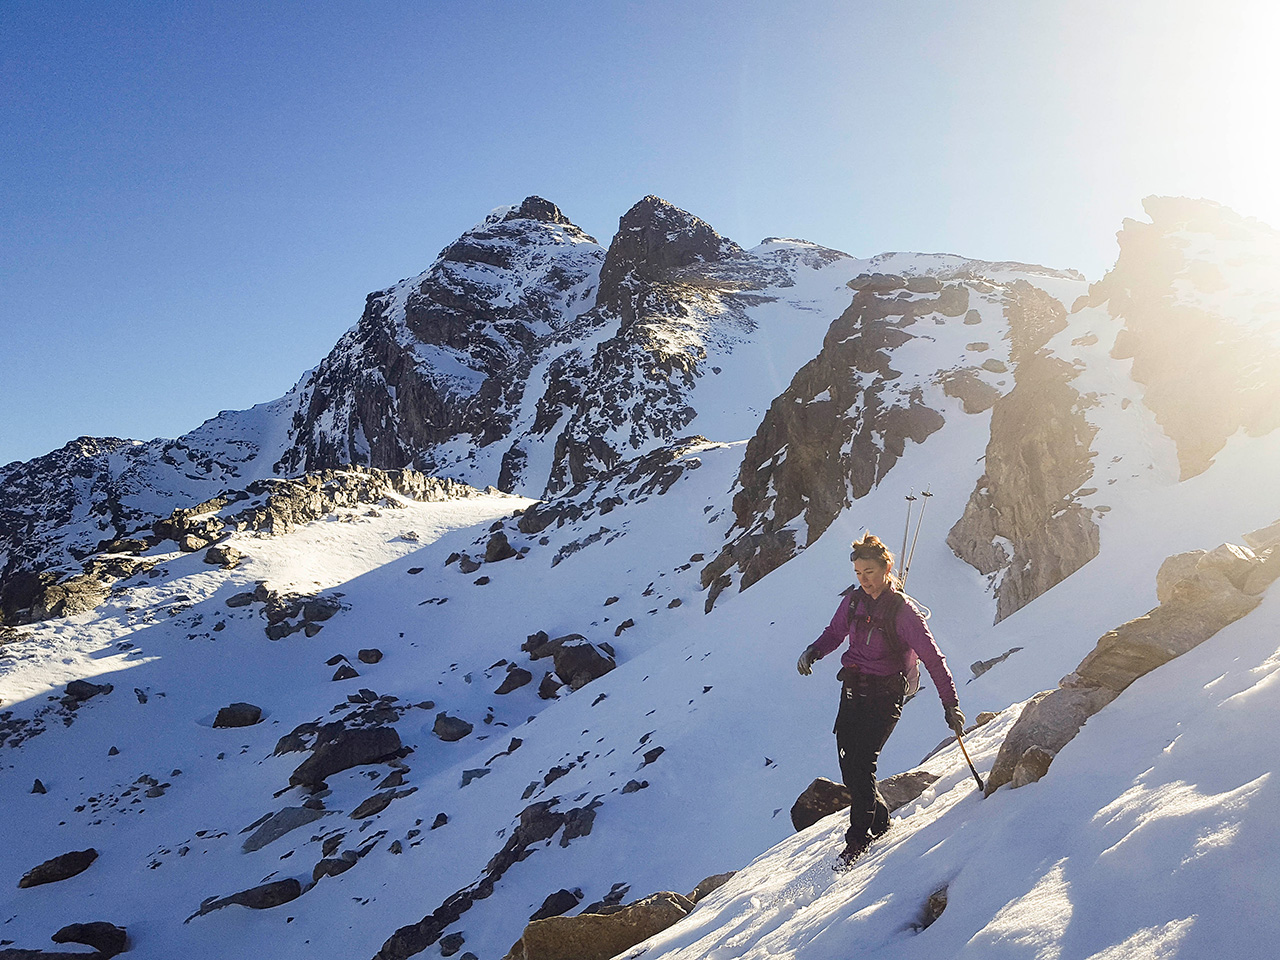 Woman hiking down a steep snowy slope